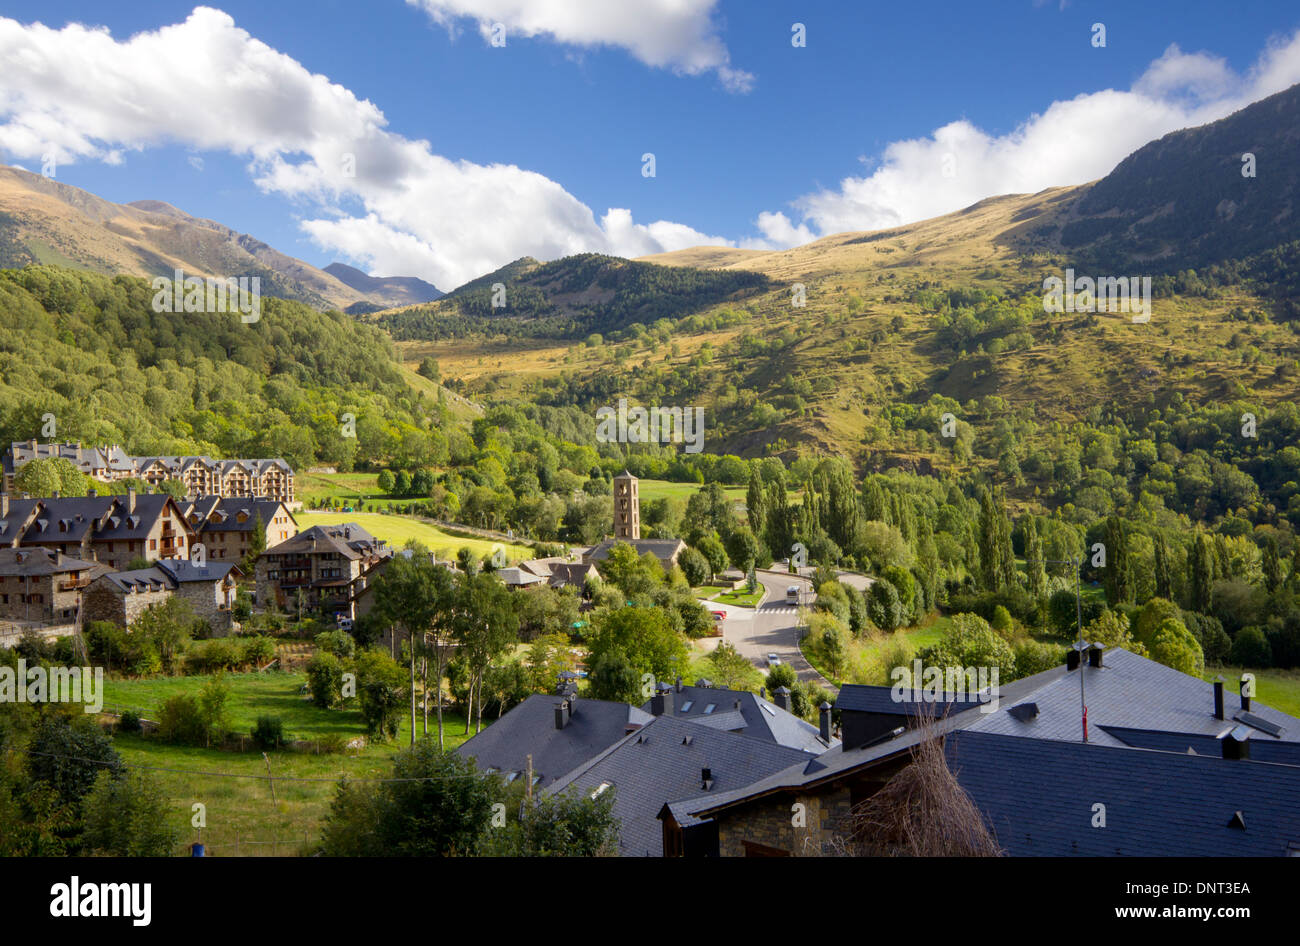 Taüll is the villages of the municipality of Vall de Boí in the comarca of Alta Ribagorça in Catalonia (Spain) - Stock Image